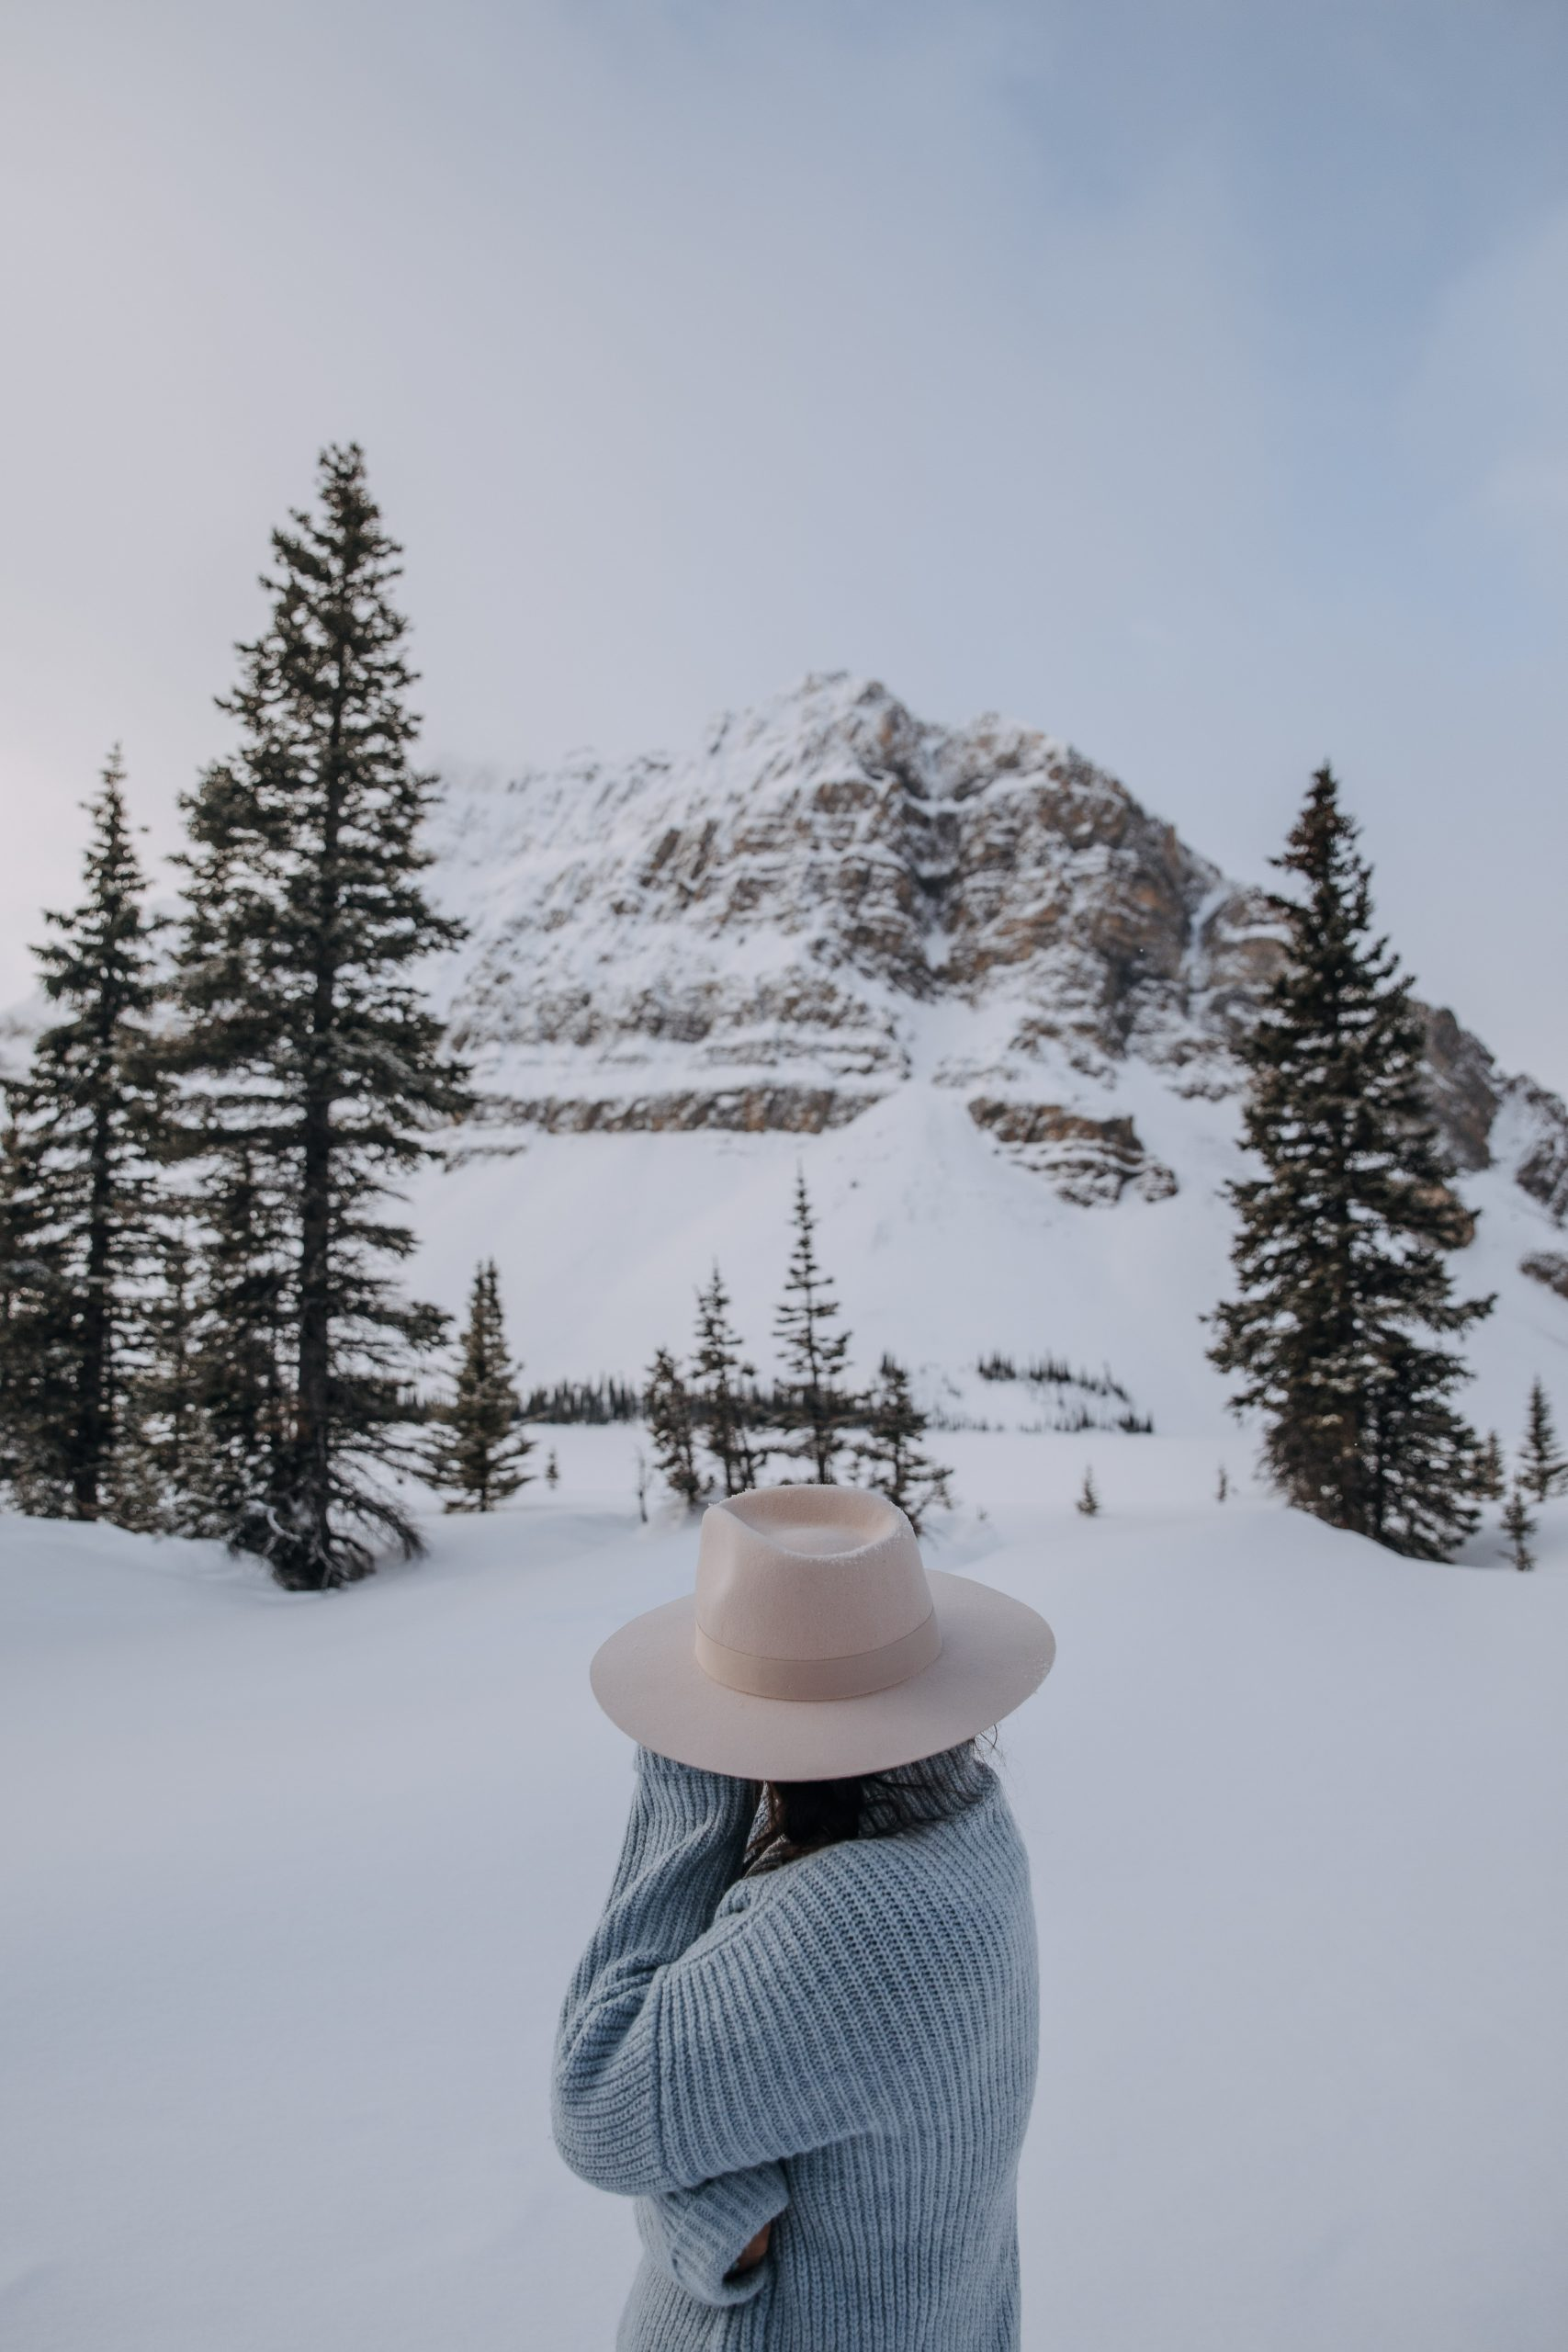 The Ultimate Banff Winter Guide - Girl at Bow Lake in the Winter